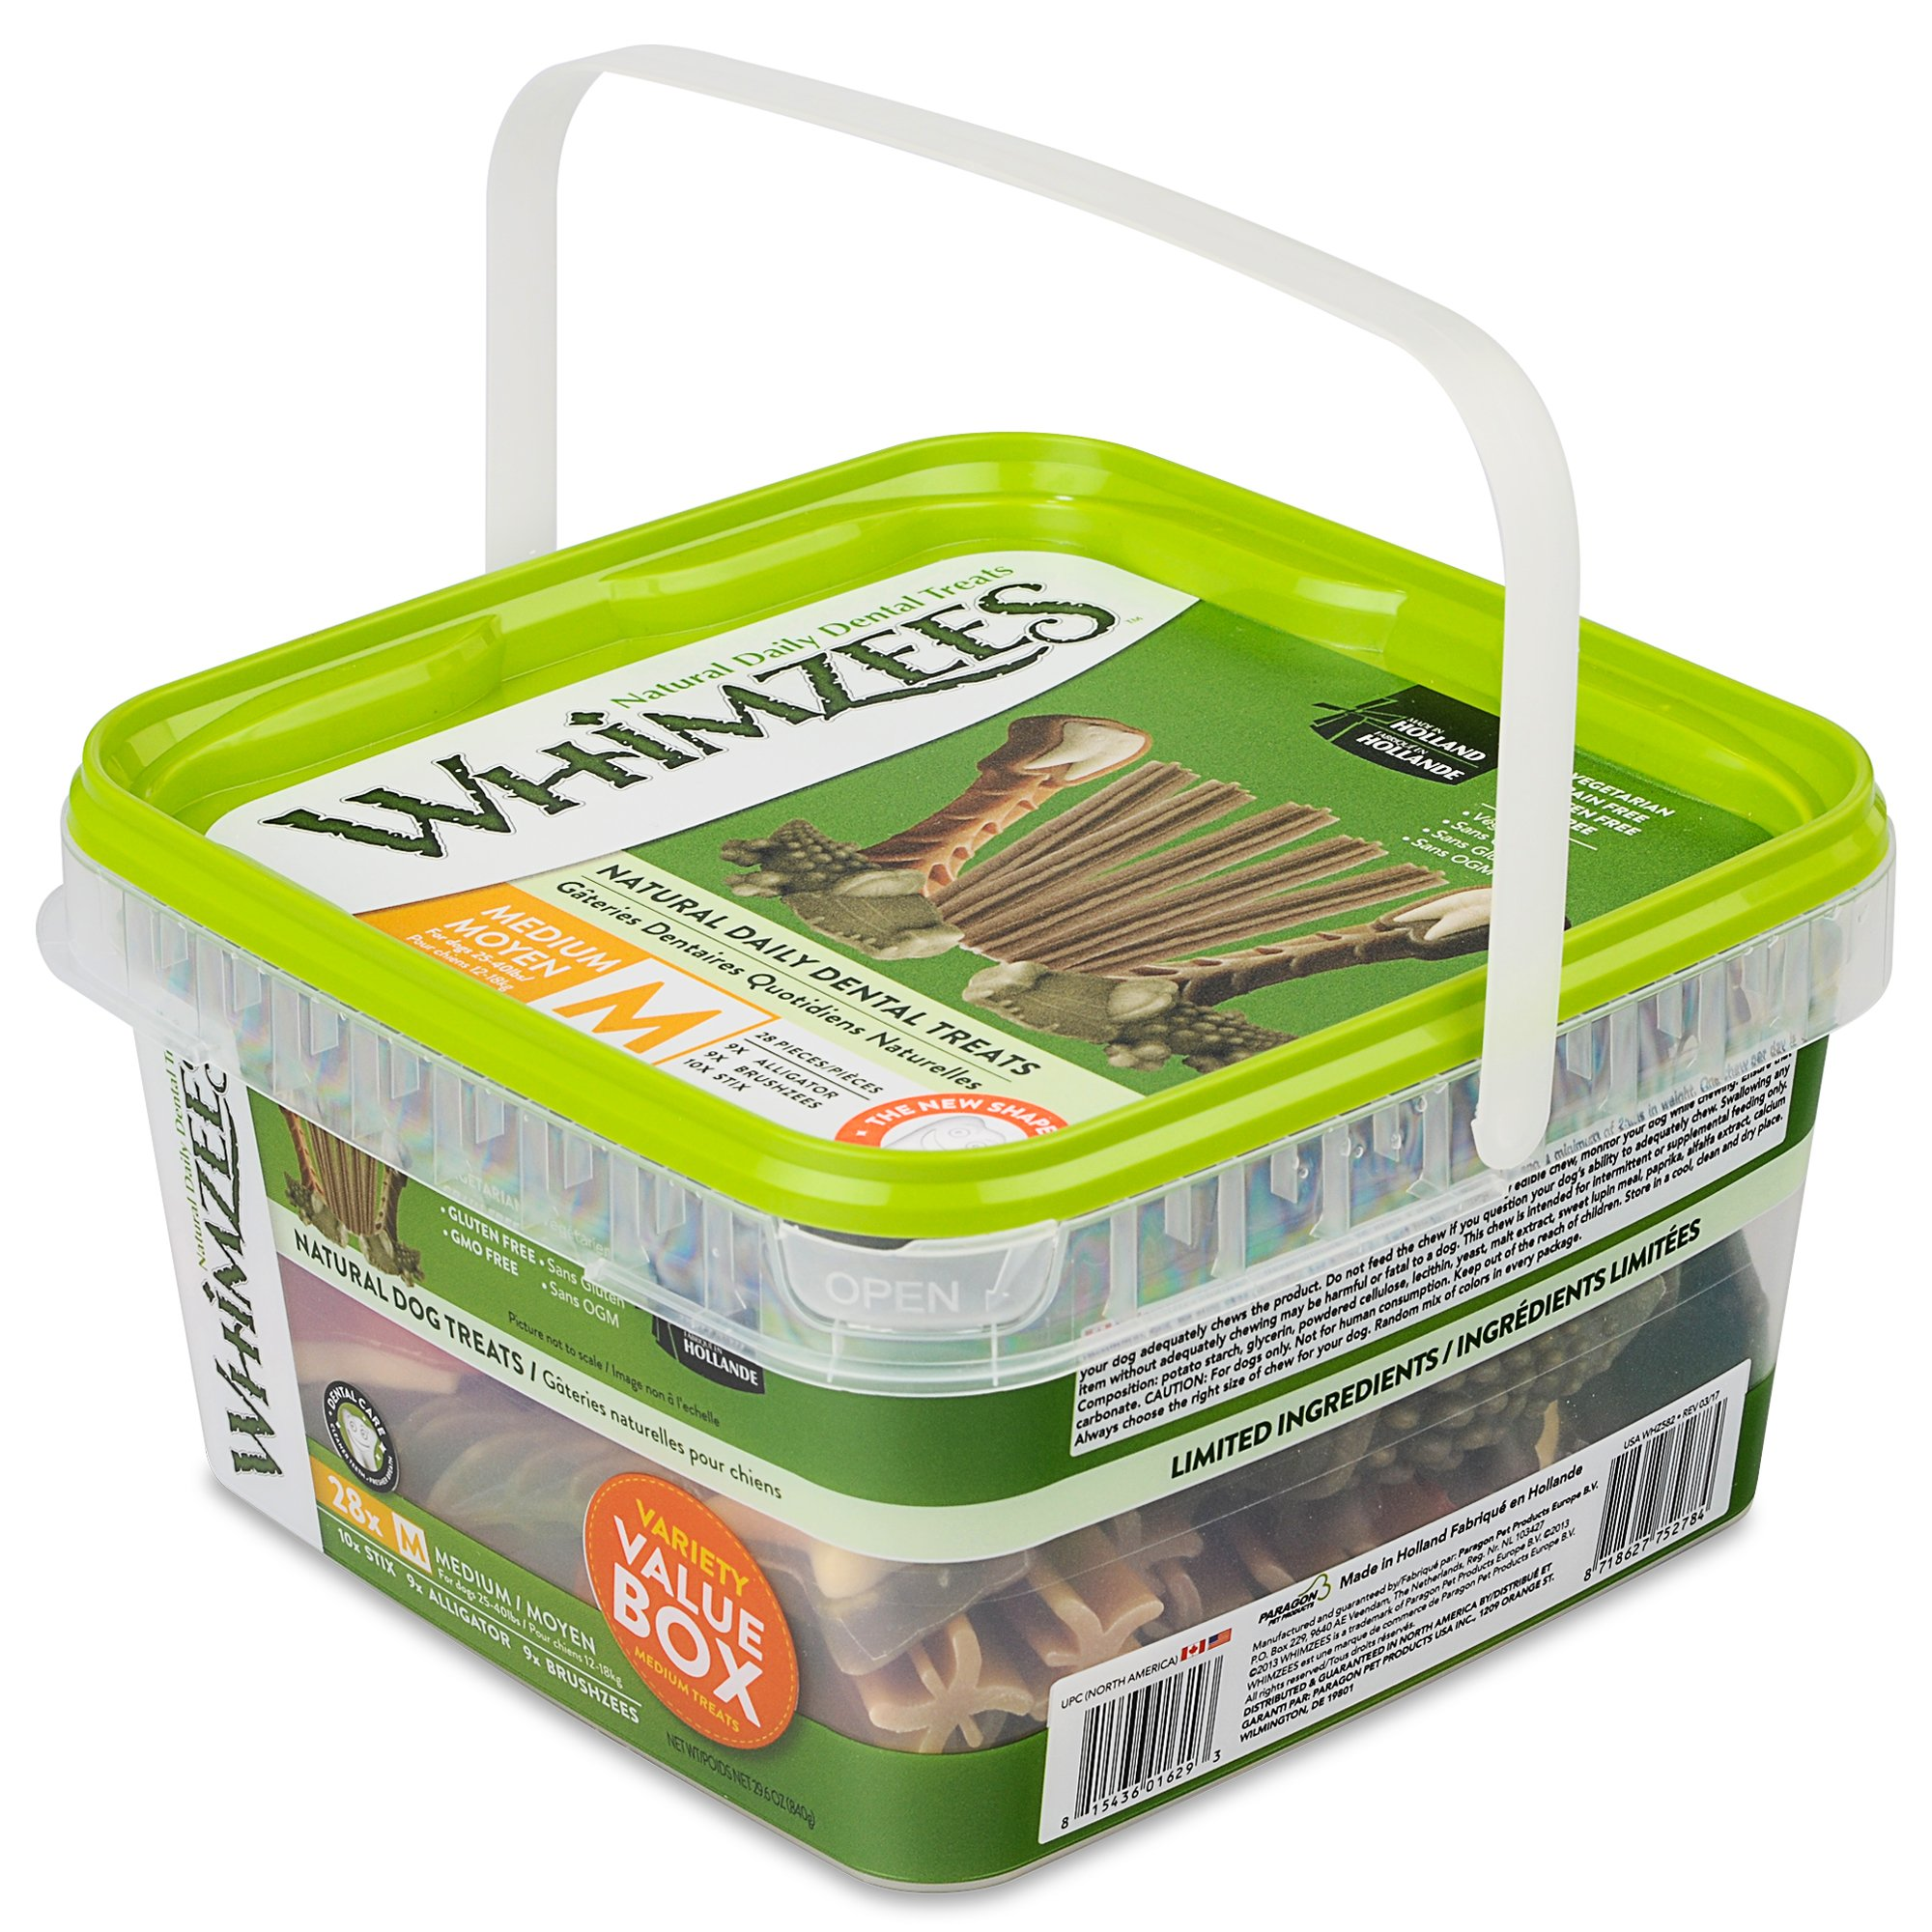 Whimzees Variety Value Box Medium (28 Pieces) by Whimzees